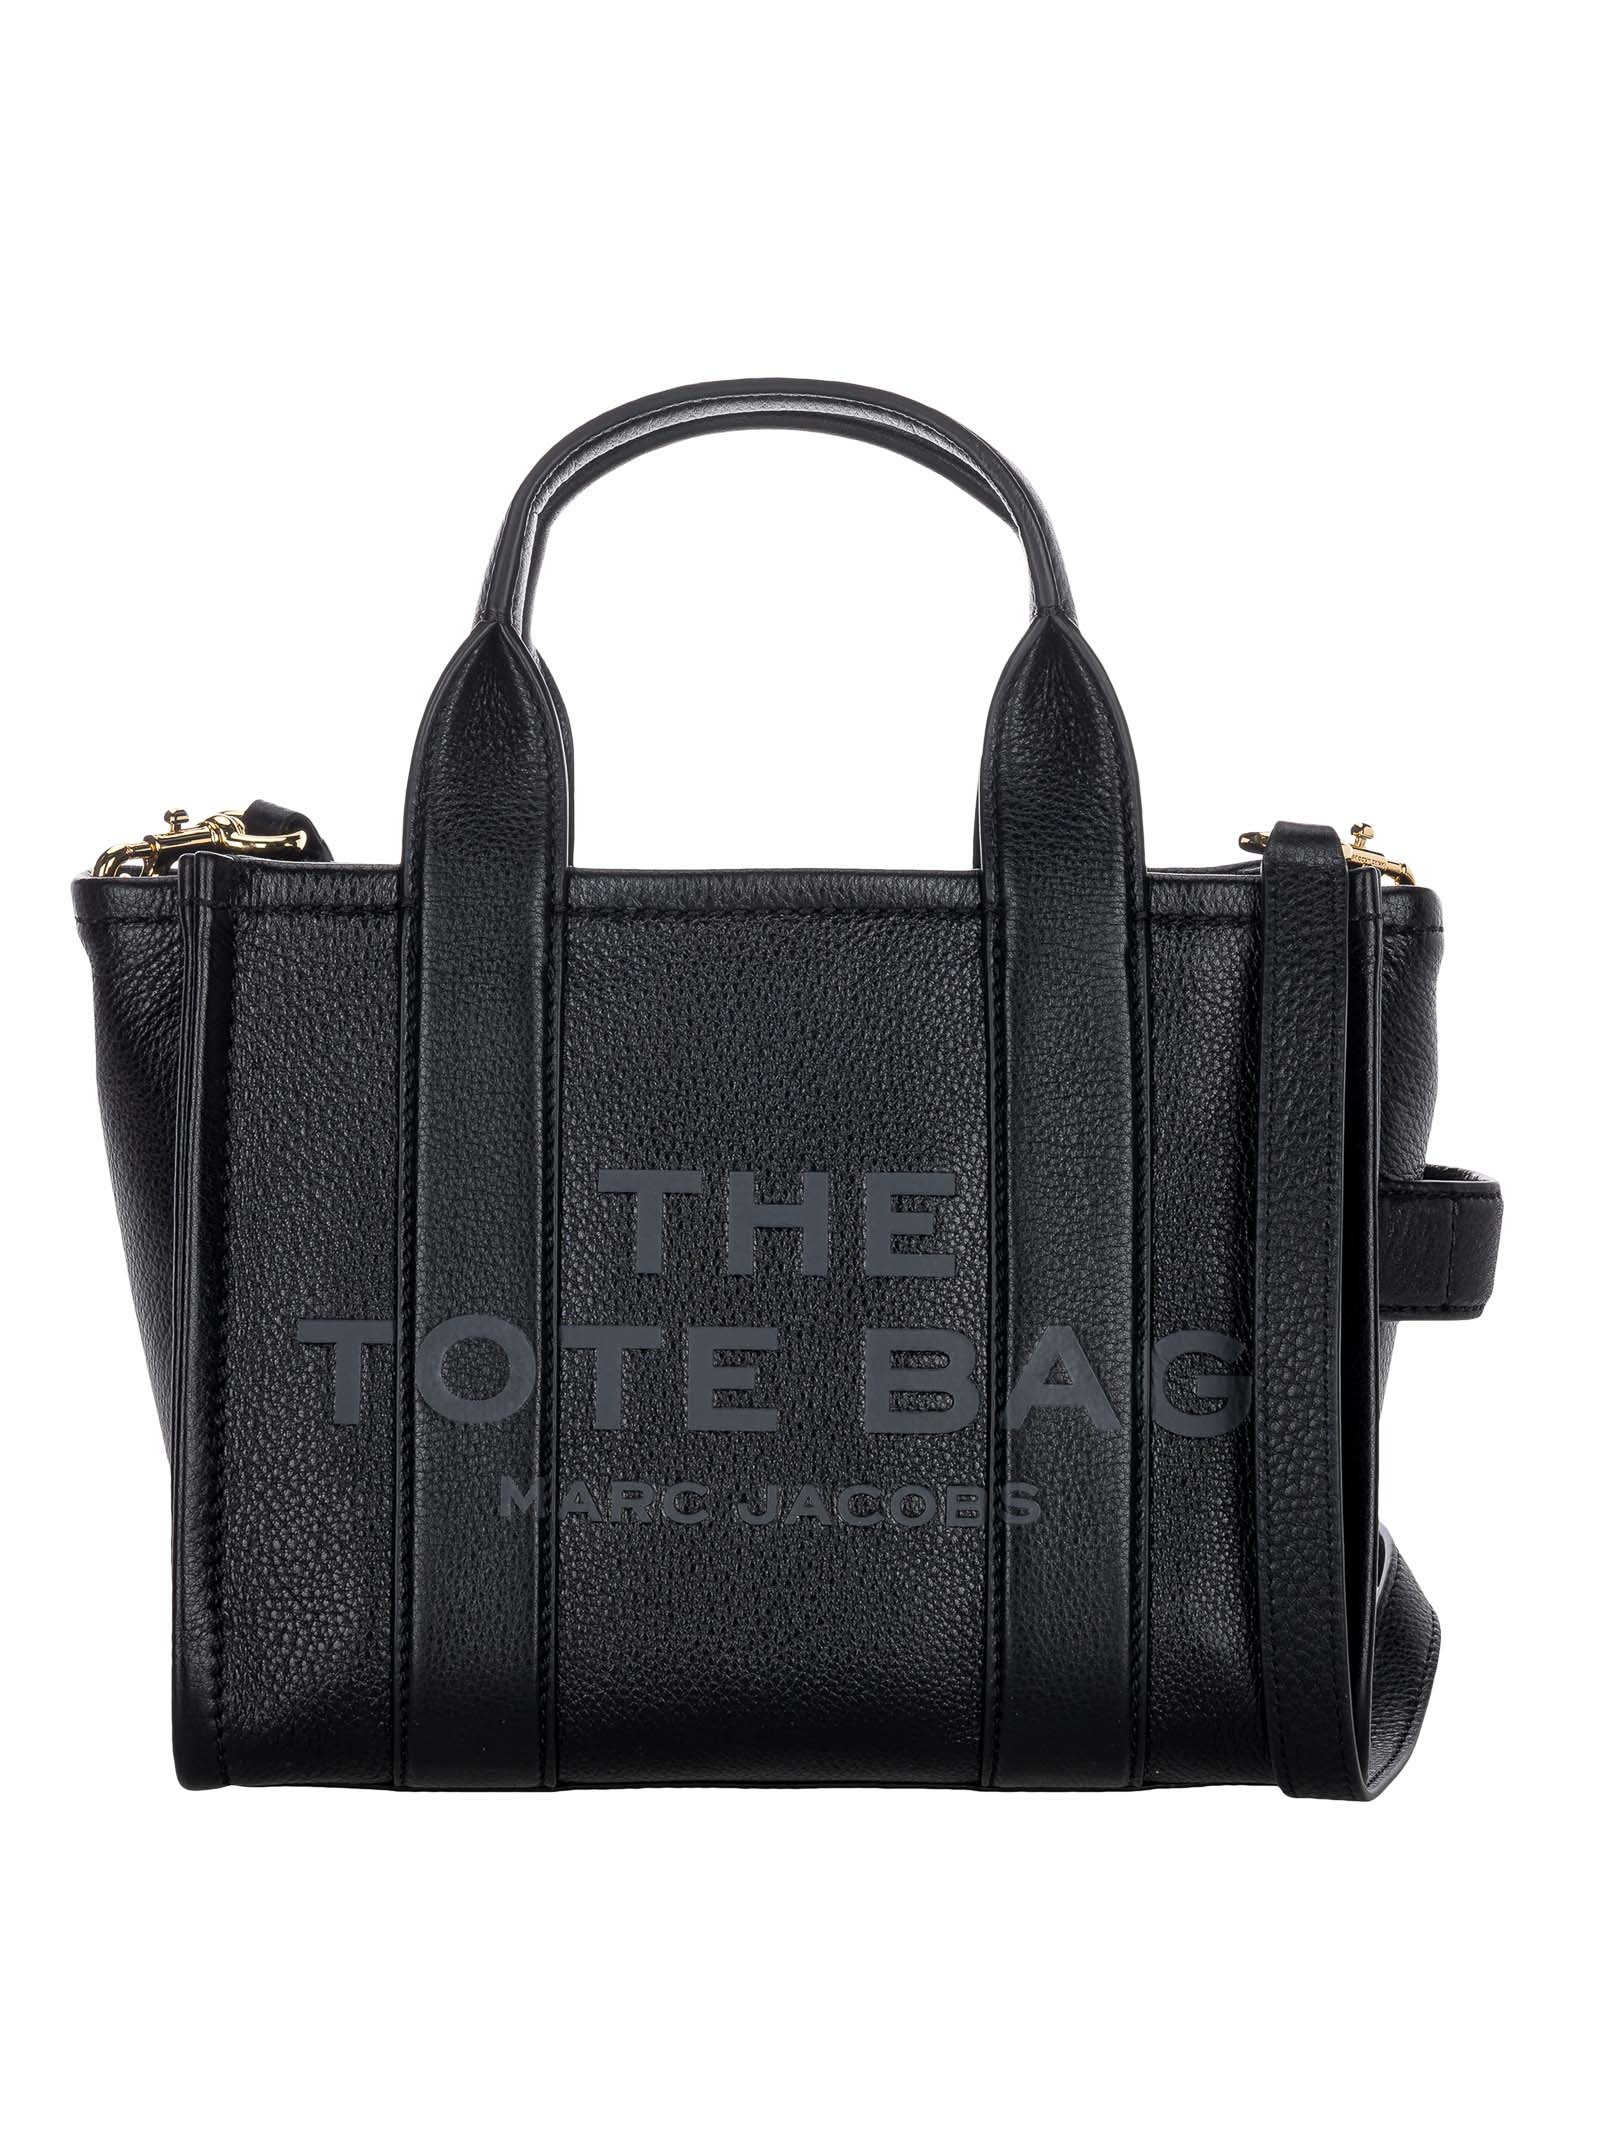 Marc Jacobs MARC JACOBS THE LEATHER MINI TRAVELER TOTE BAG